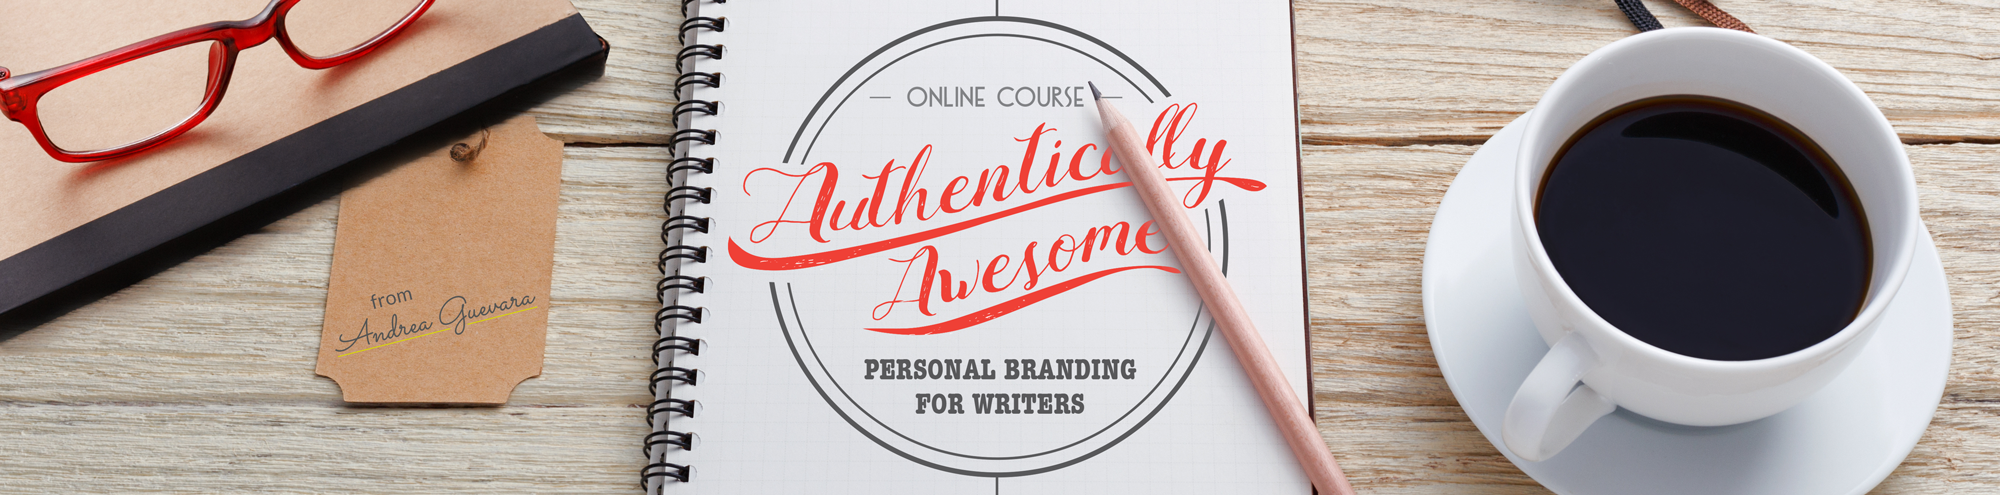 Personal Branding for Writers course